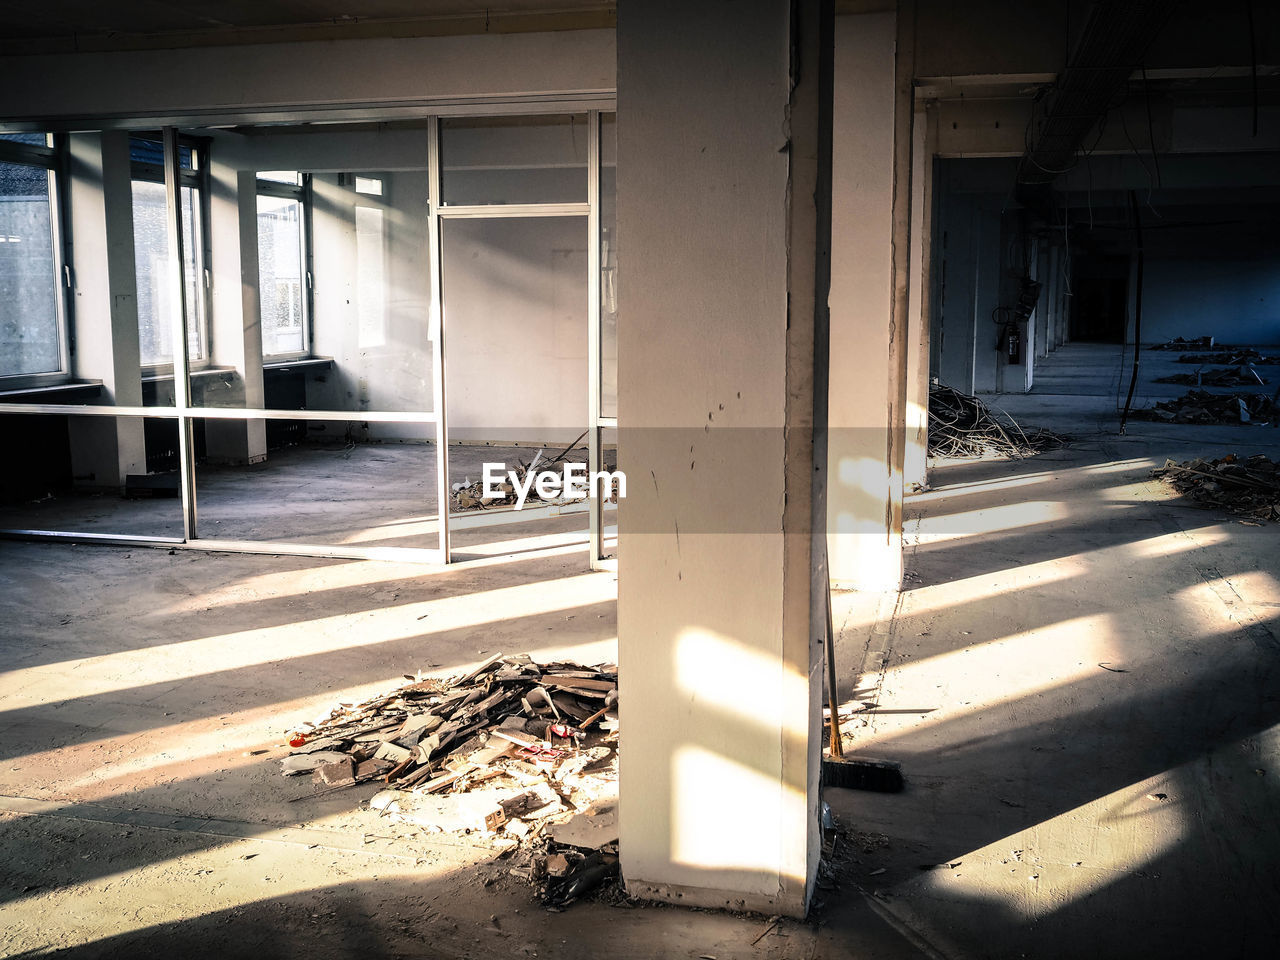 architecture, sunlight, built structure, no people, day, architectural column, nature, shadow, outdoors, abandoned, window, building, damaged, transportation, obsolete, entrance, parking lot, ruined